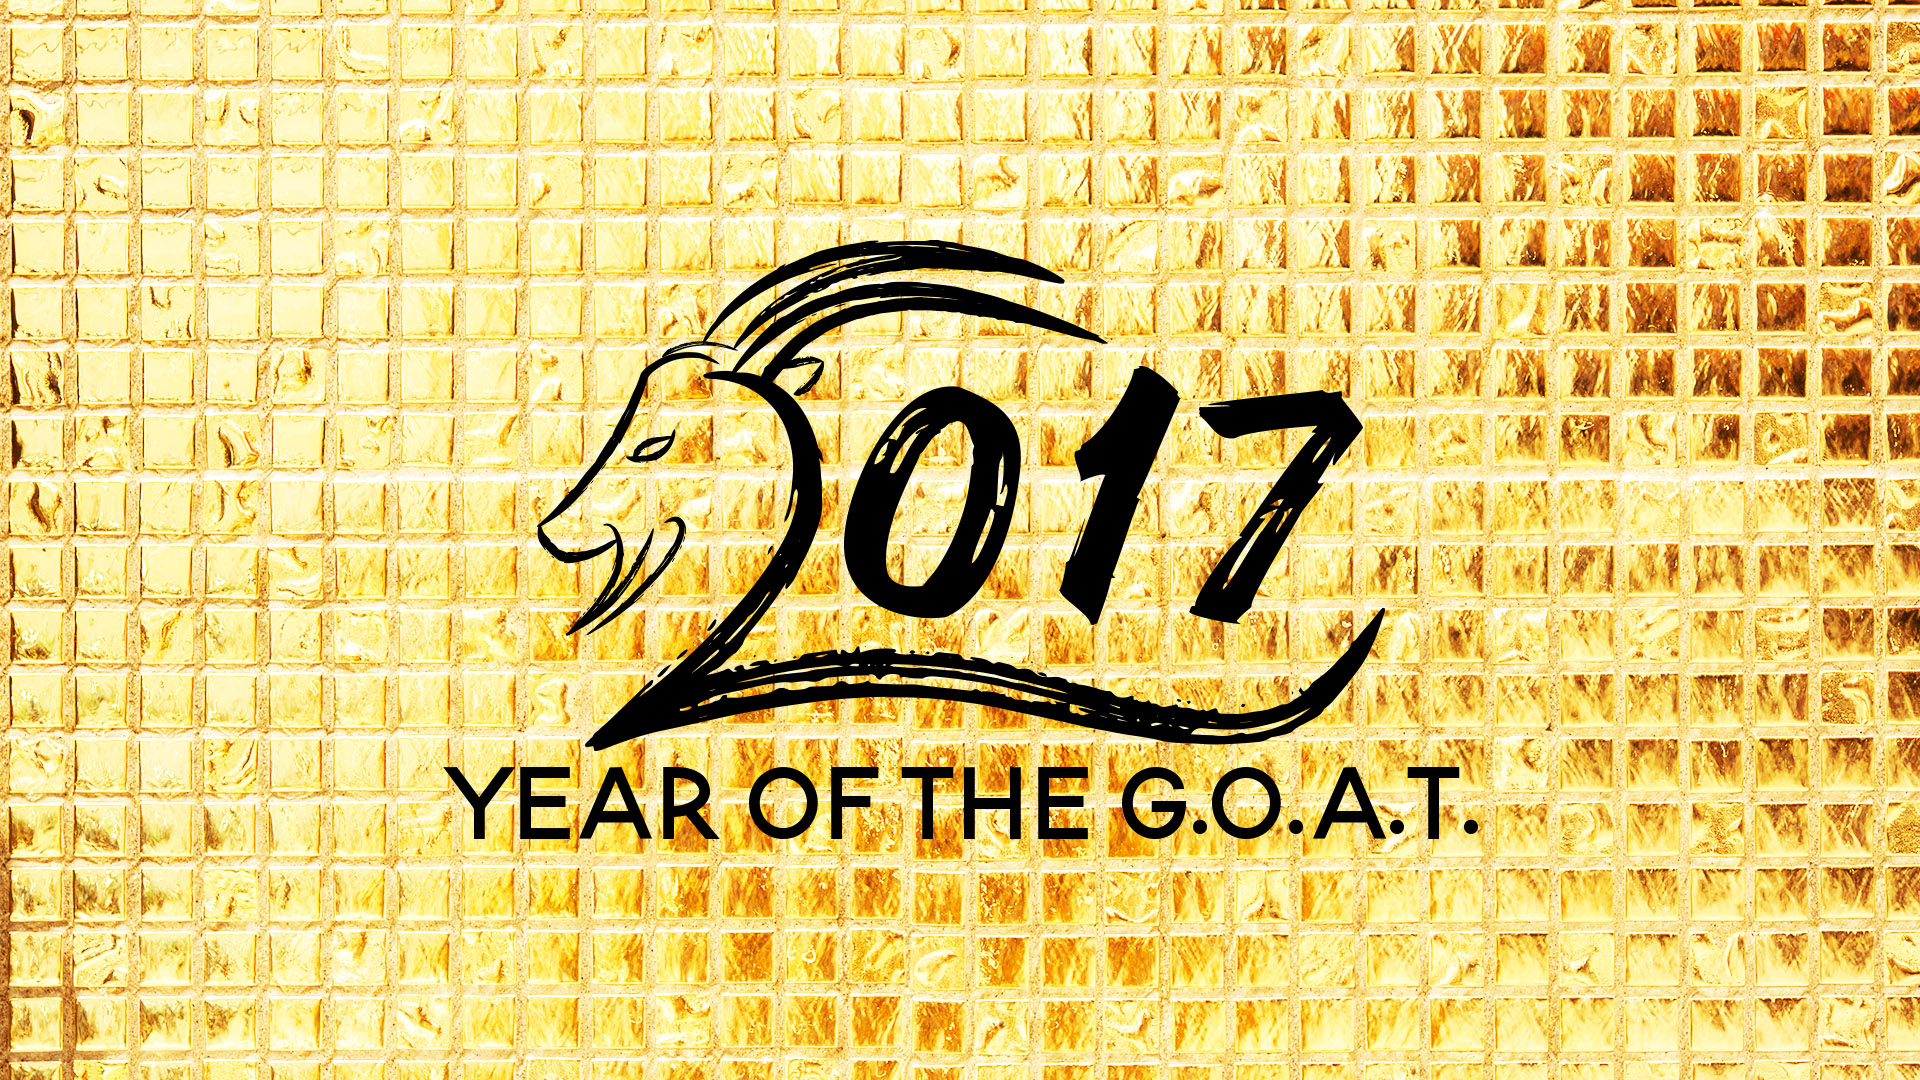 The Year of the G.O.A.T.